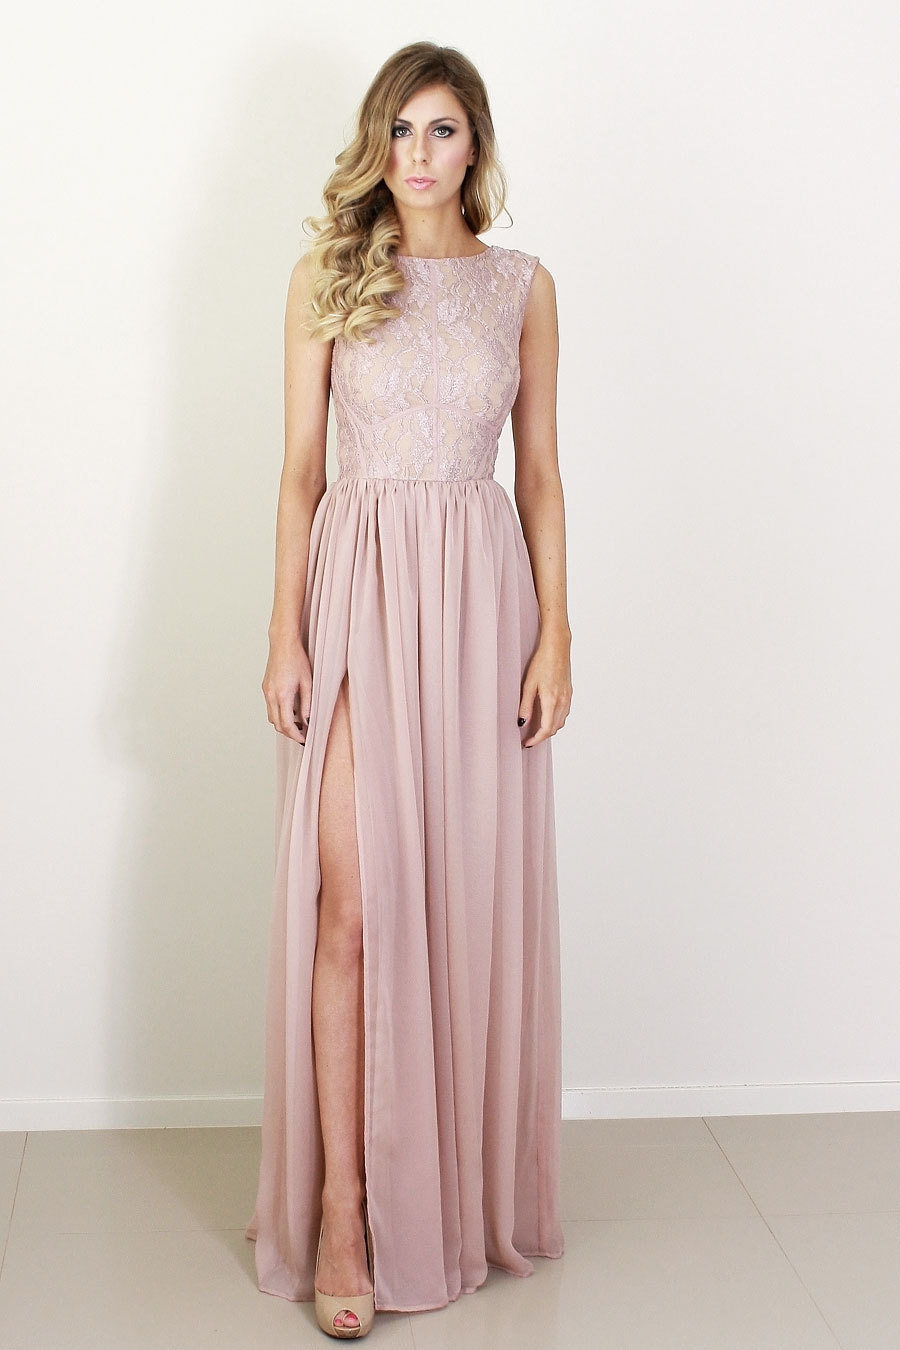 Dusty pink bridesmaid dress dress modest bridesmaid dress dusty pink bridesmaid dress dress modest bridesmaid dress chiffon bridesmaid dresses long bridesmaid ombrellifo Image collections